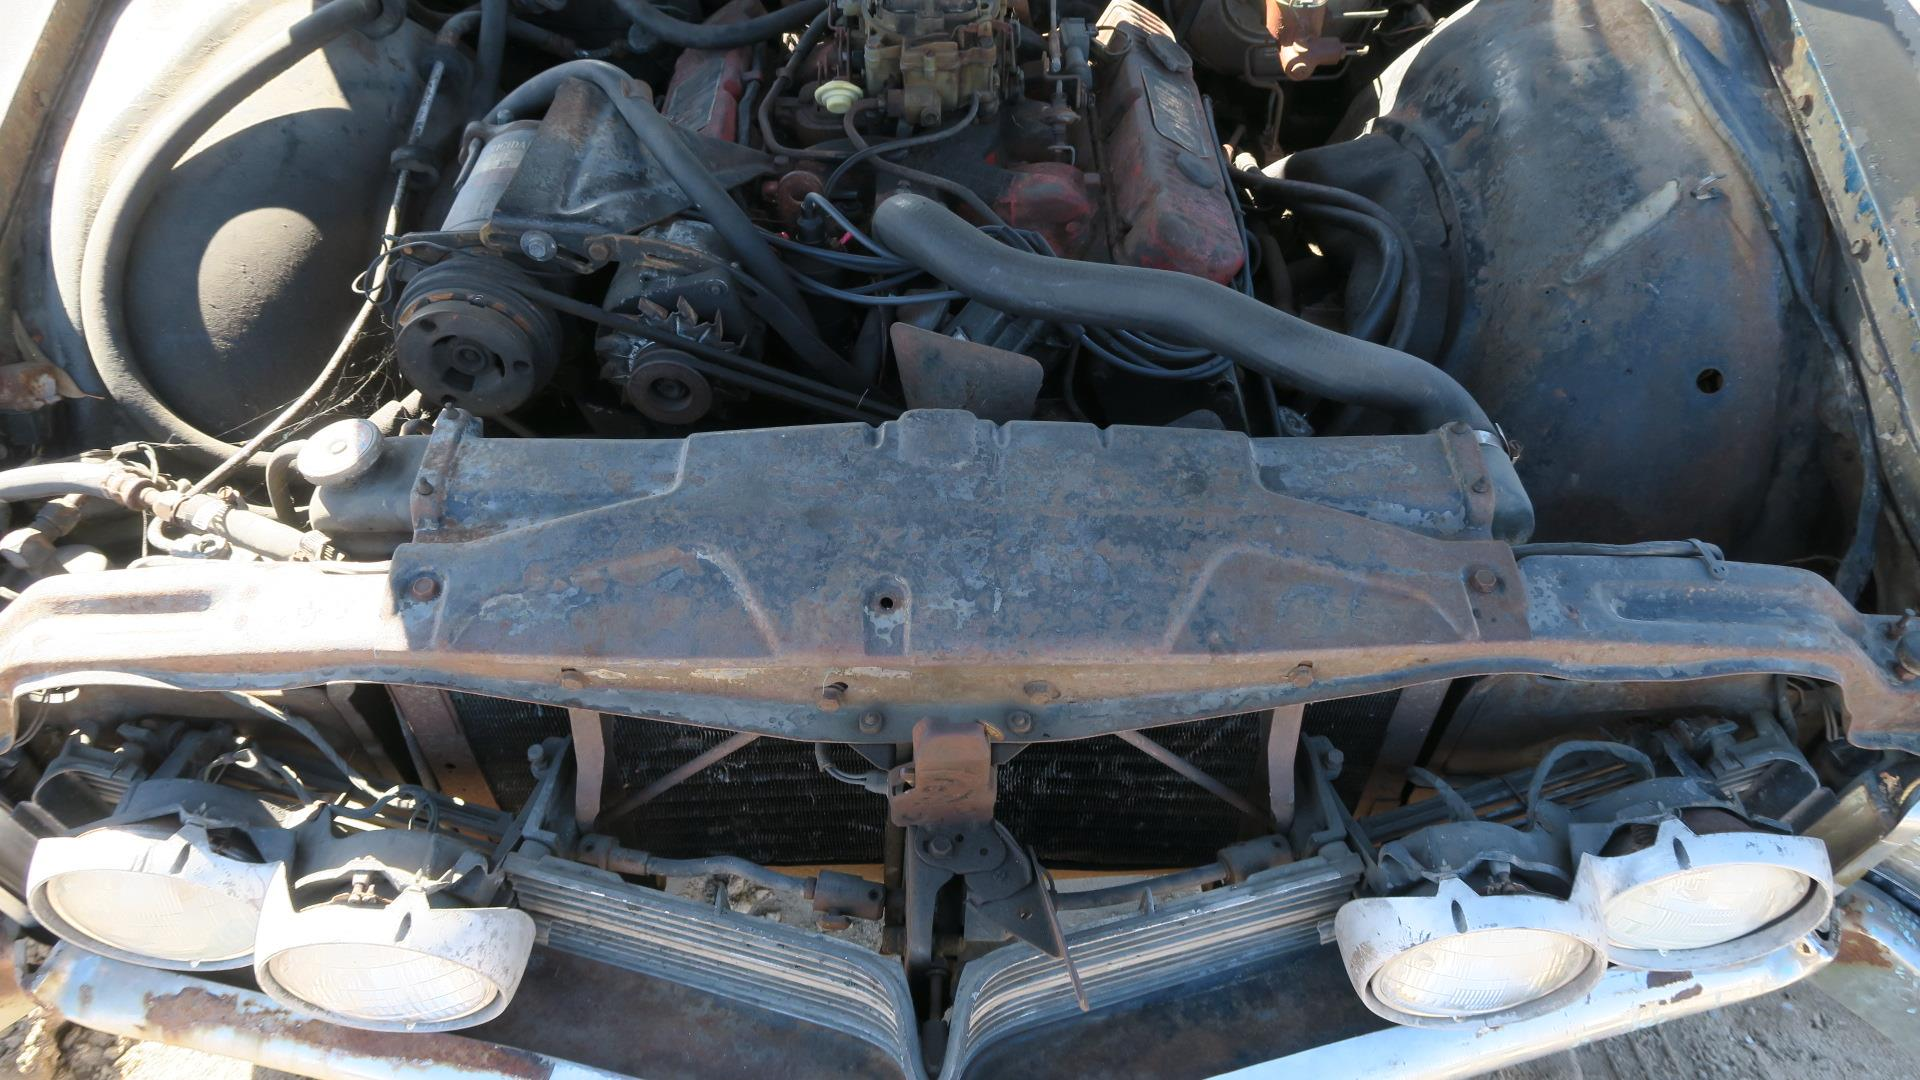 Details about 1967 Buick Riviera Project! California Car! 430 engine!